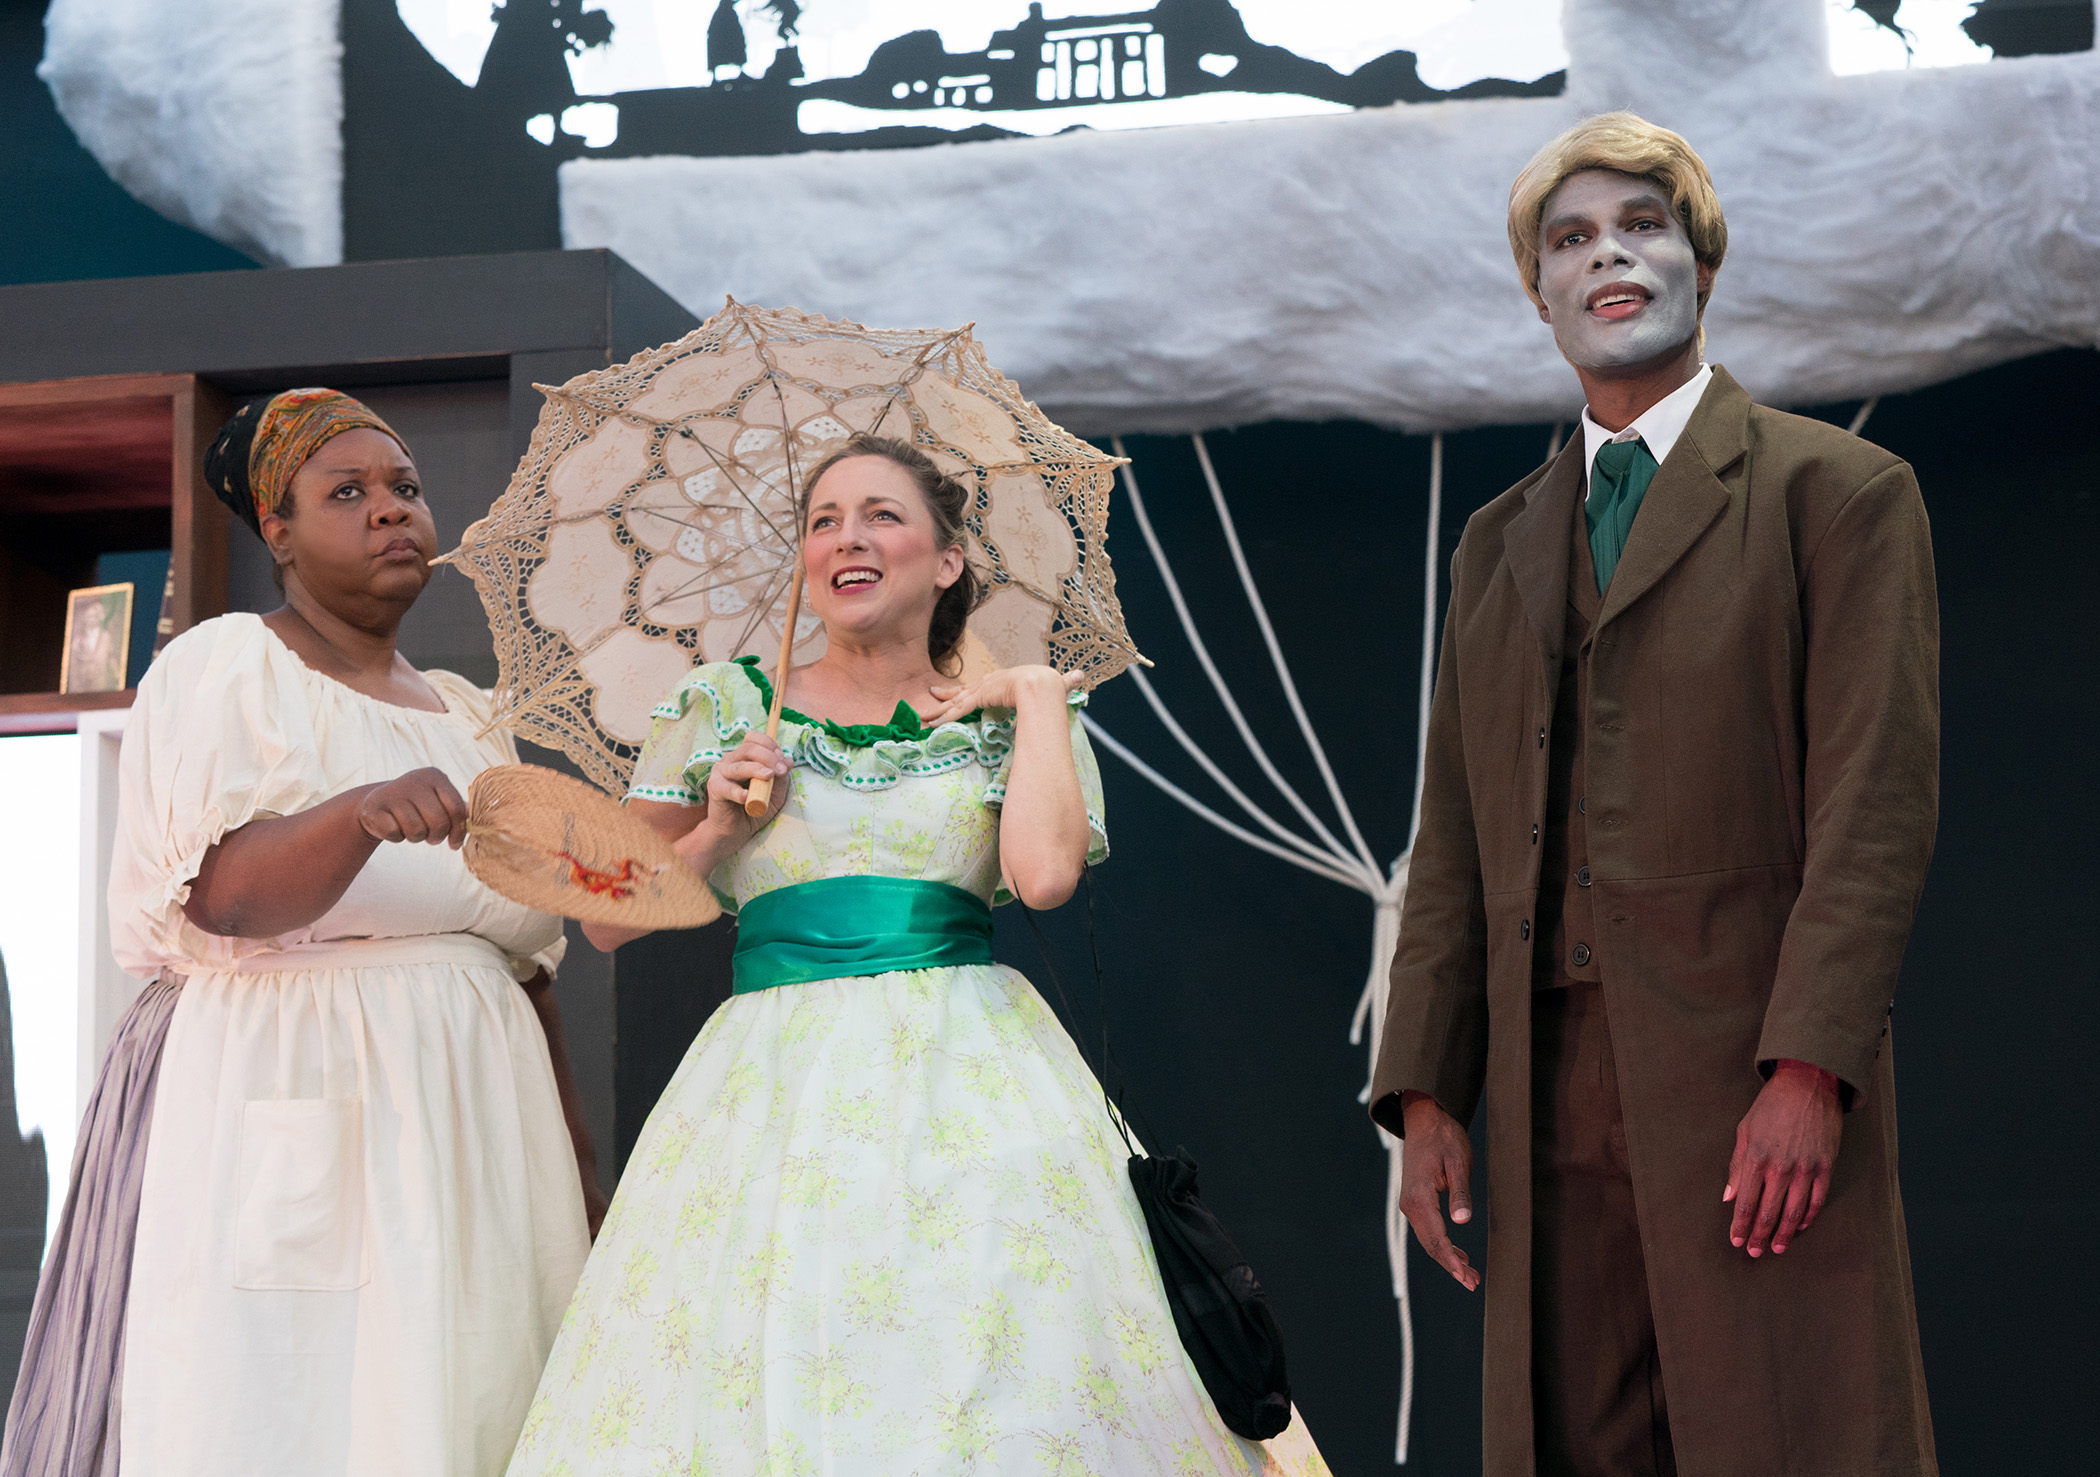 'An Octoroon': Intellectual rollercoaster ride of a play about race in America